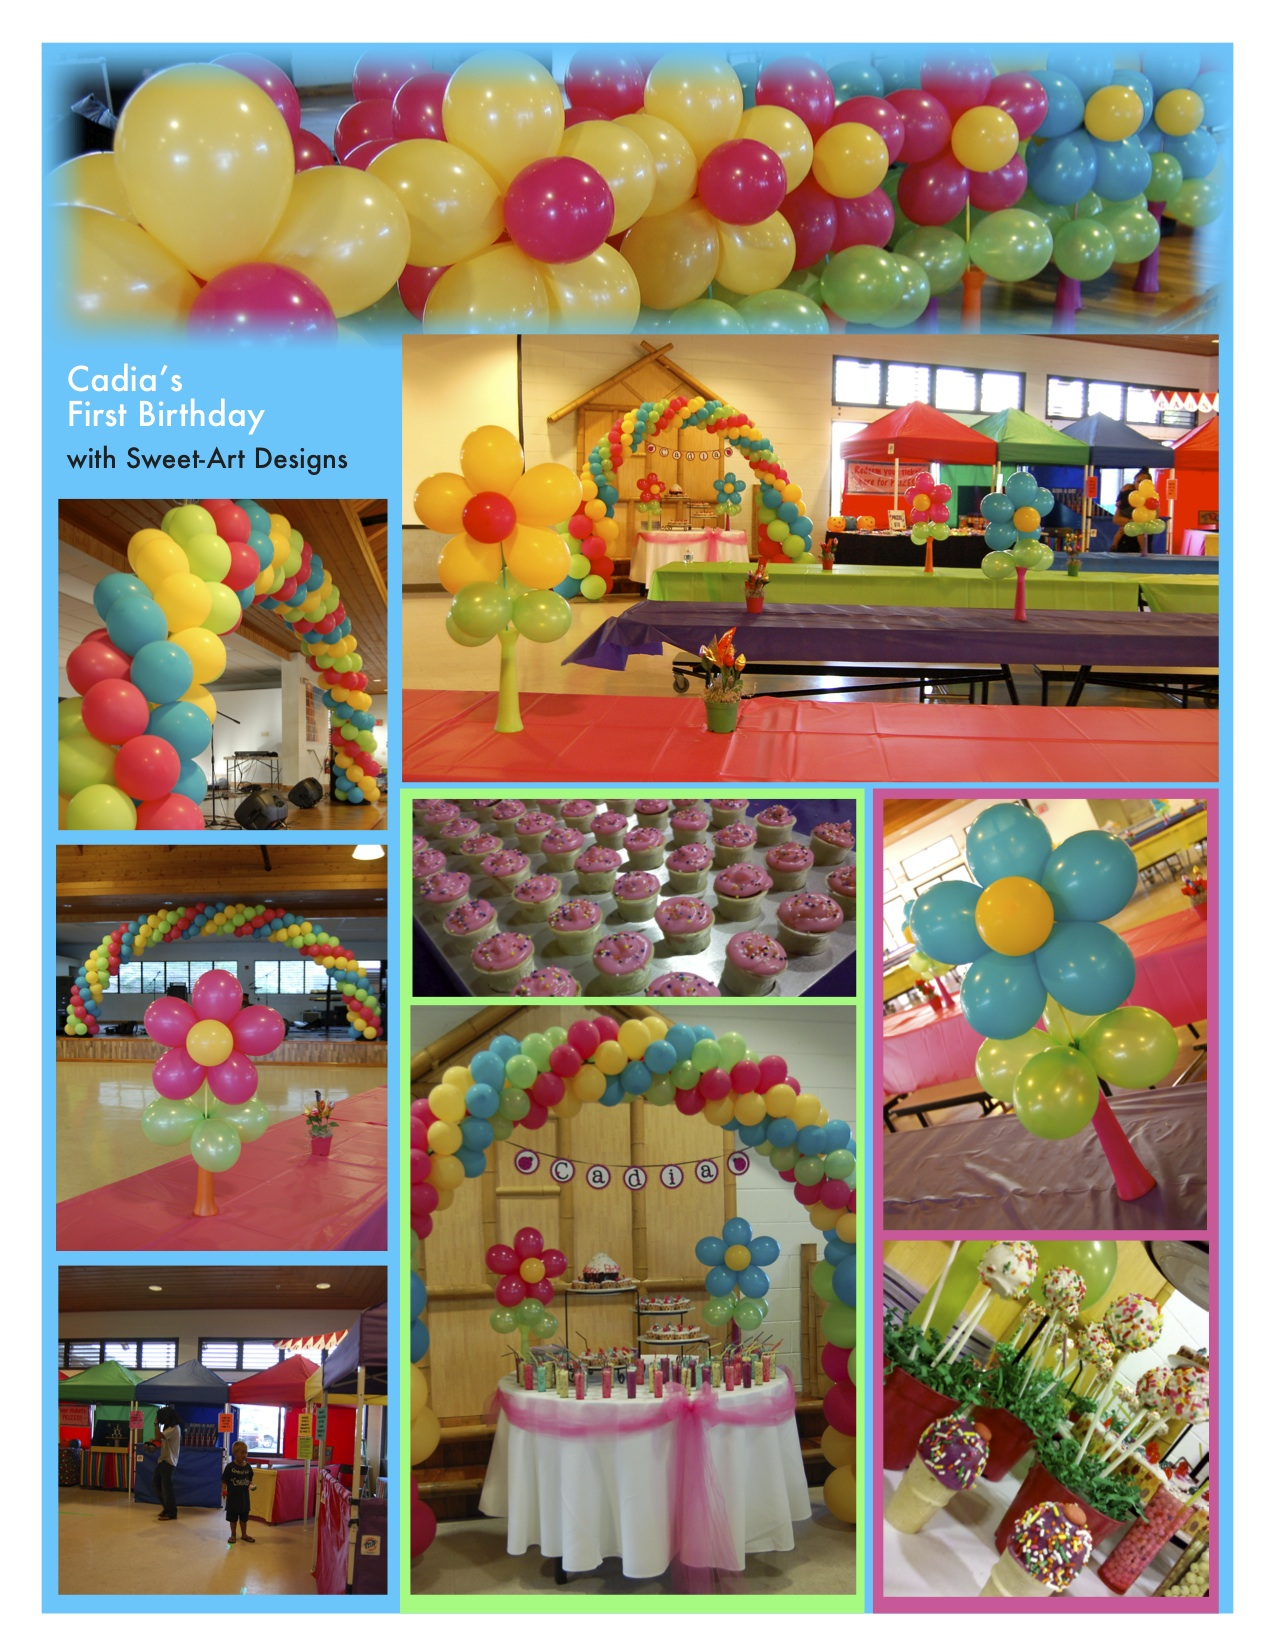 Decorations sweet art designs creative ideas from the for Balloon decoration for first birthday